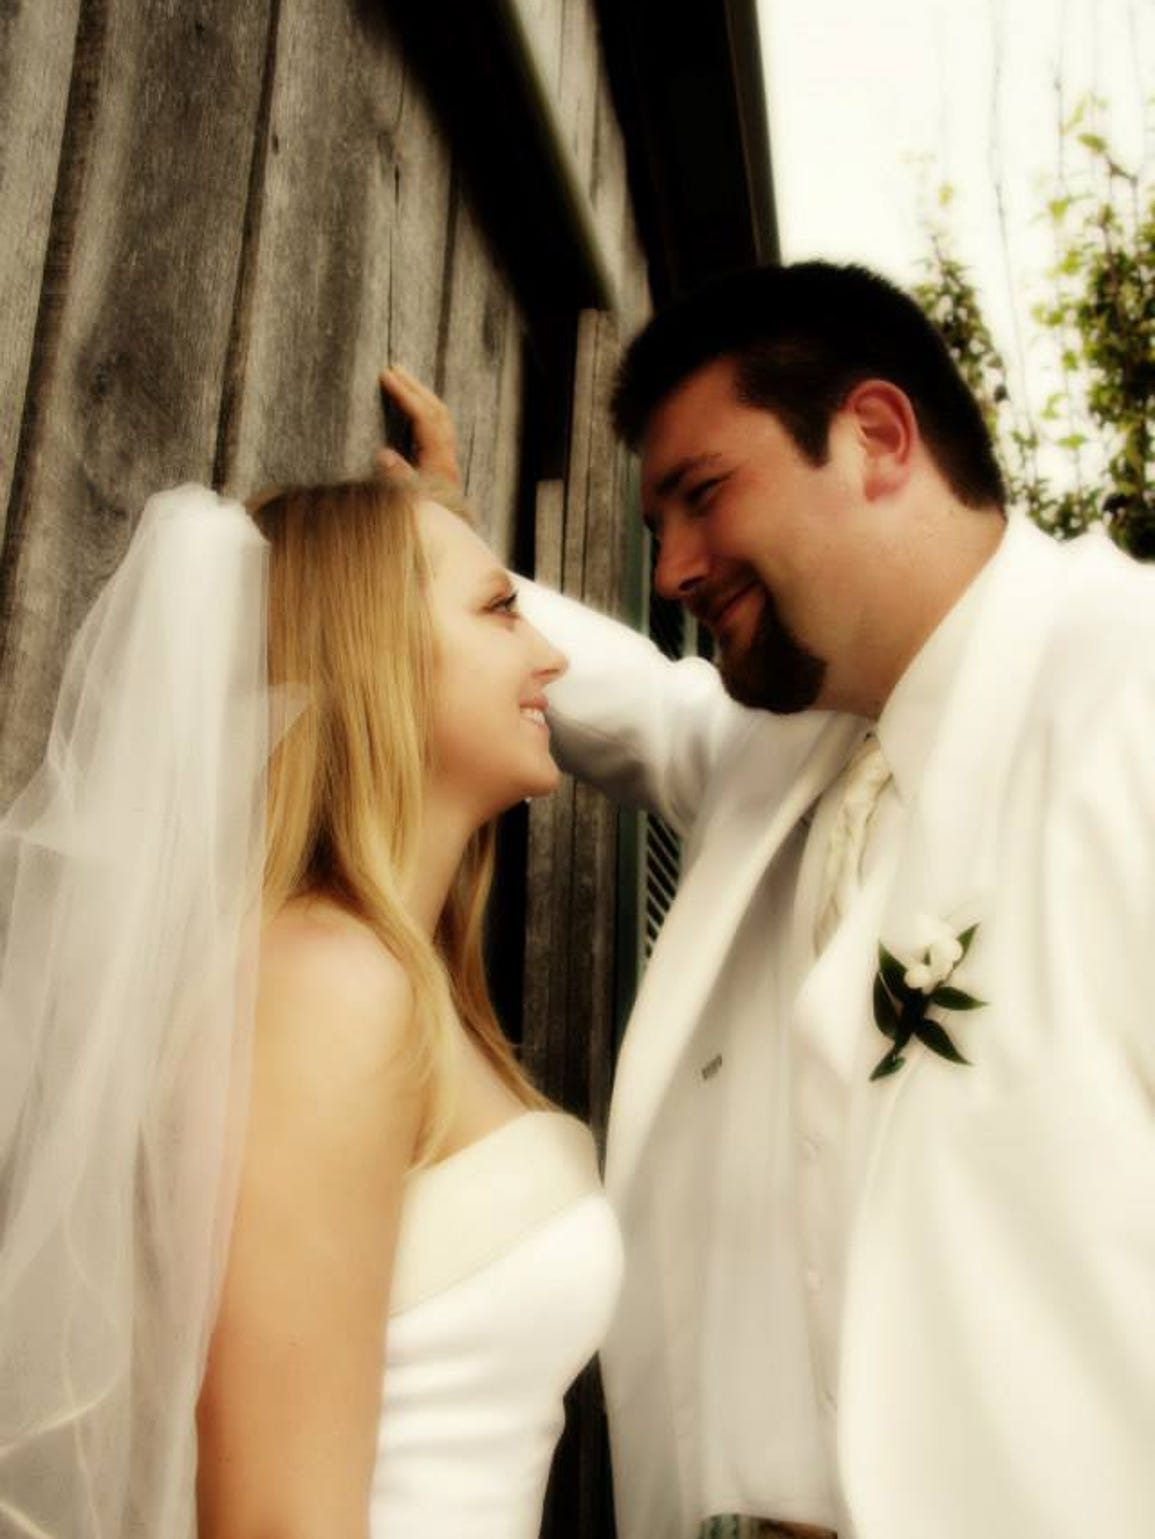 Lacey and Charles were married in 2008.